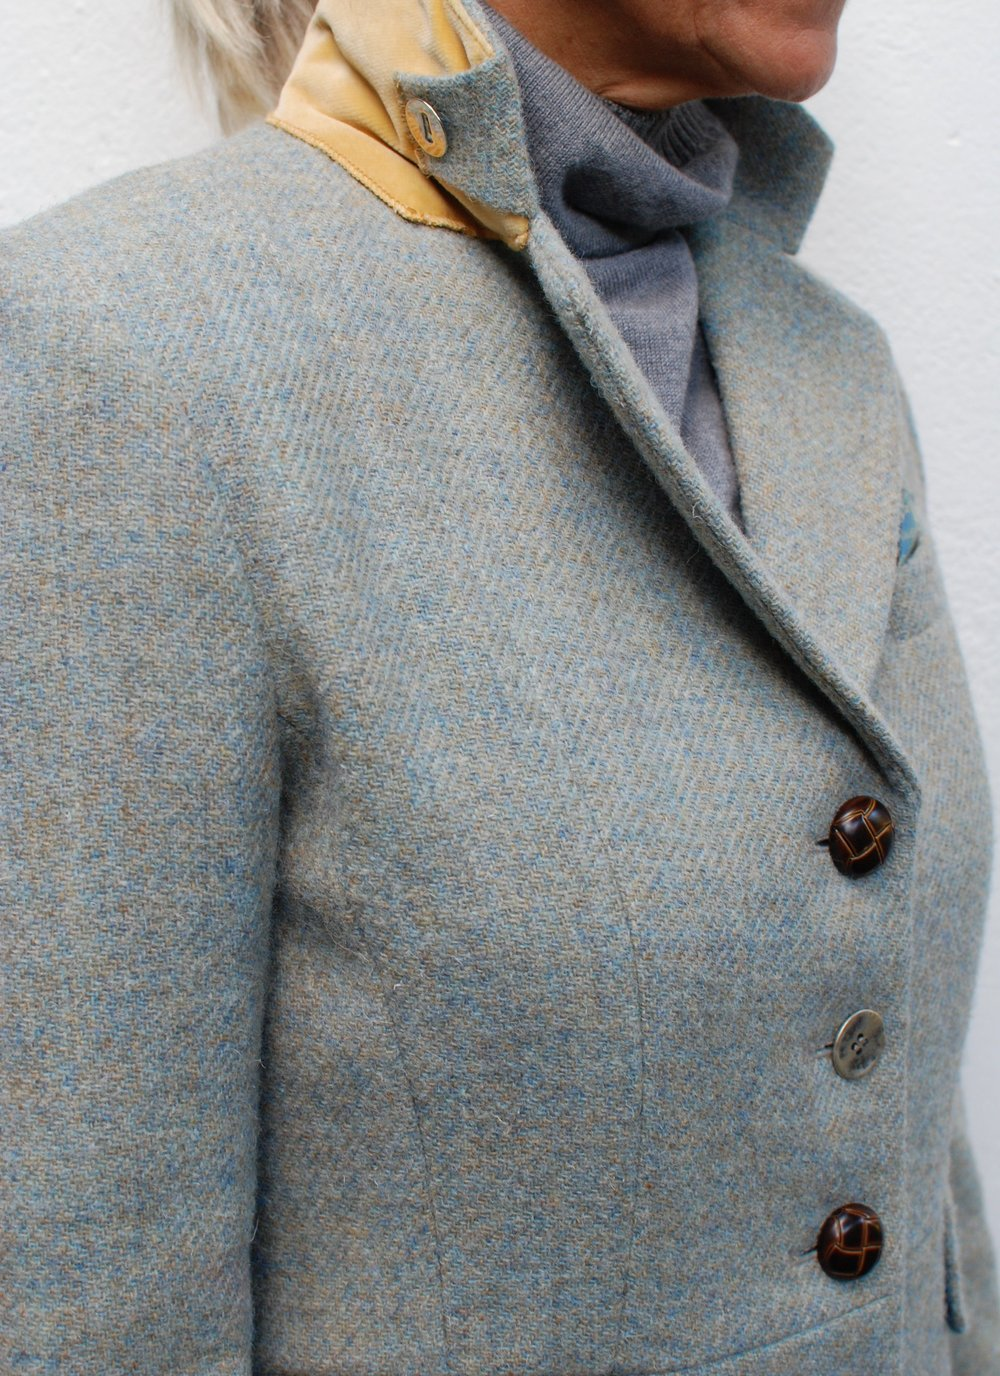 Stokey Tweed Jacket